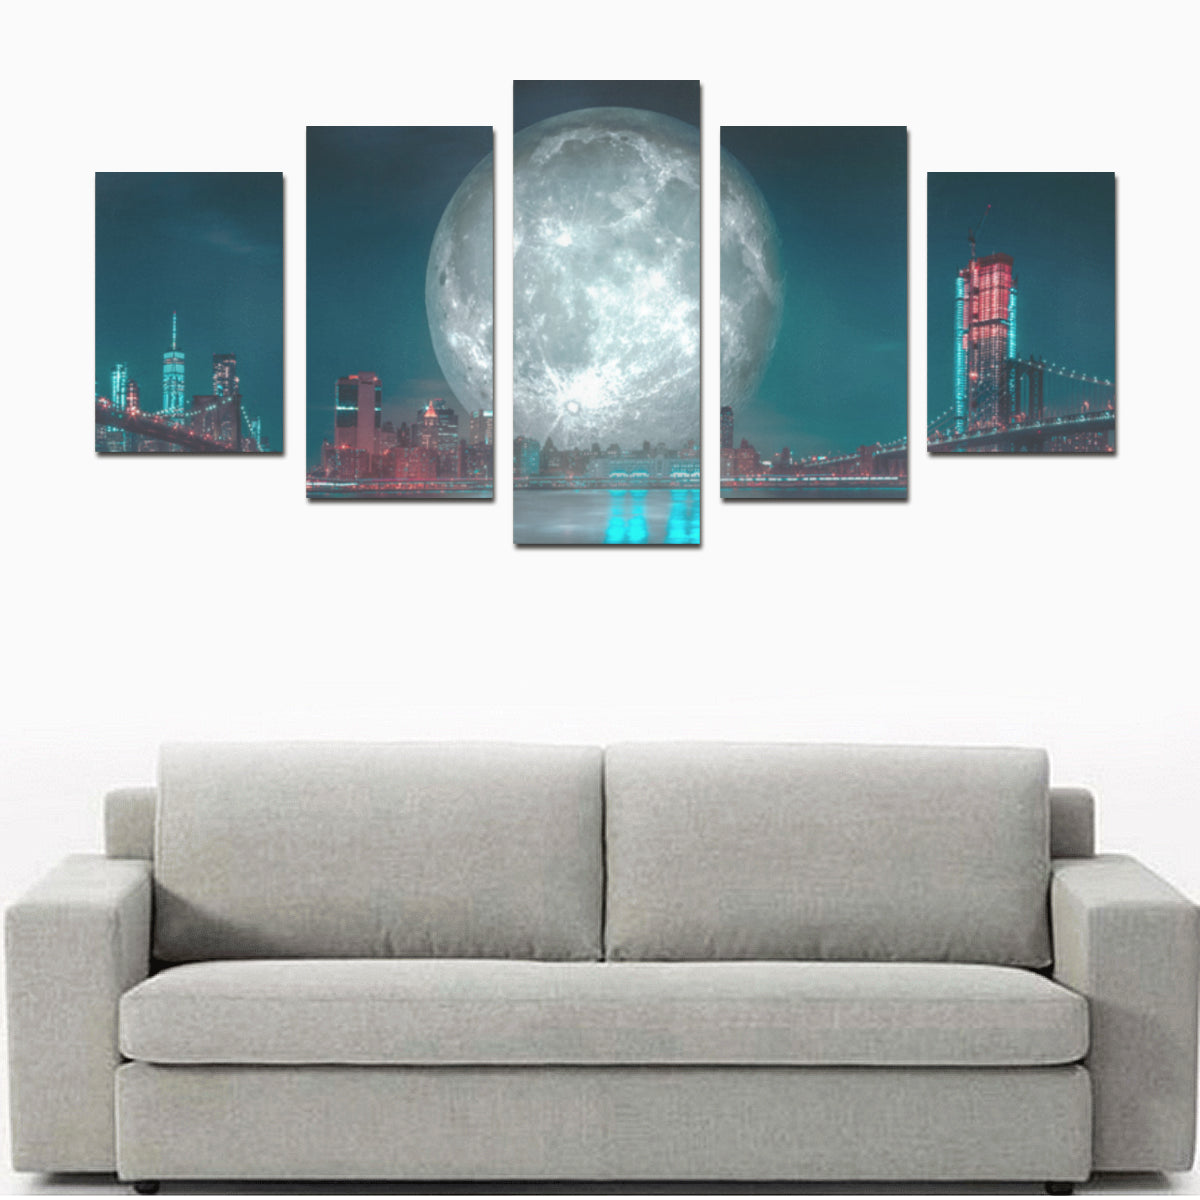 Panorama 1355 Canvas Print Sets -Size D